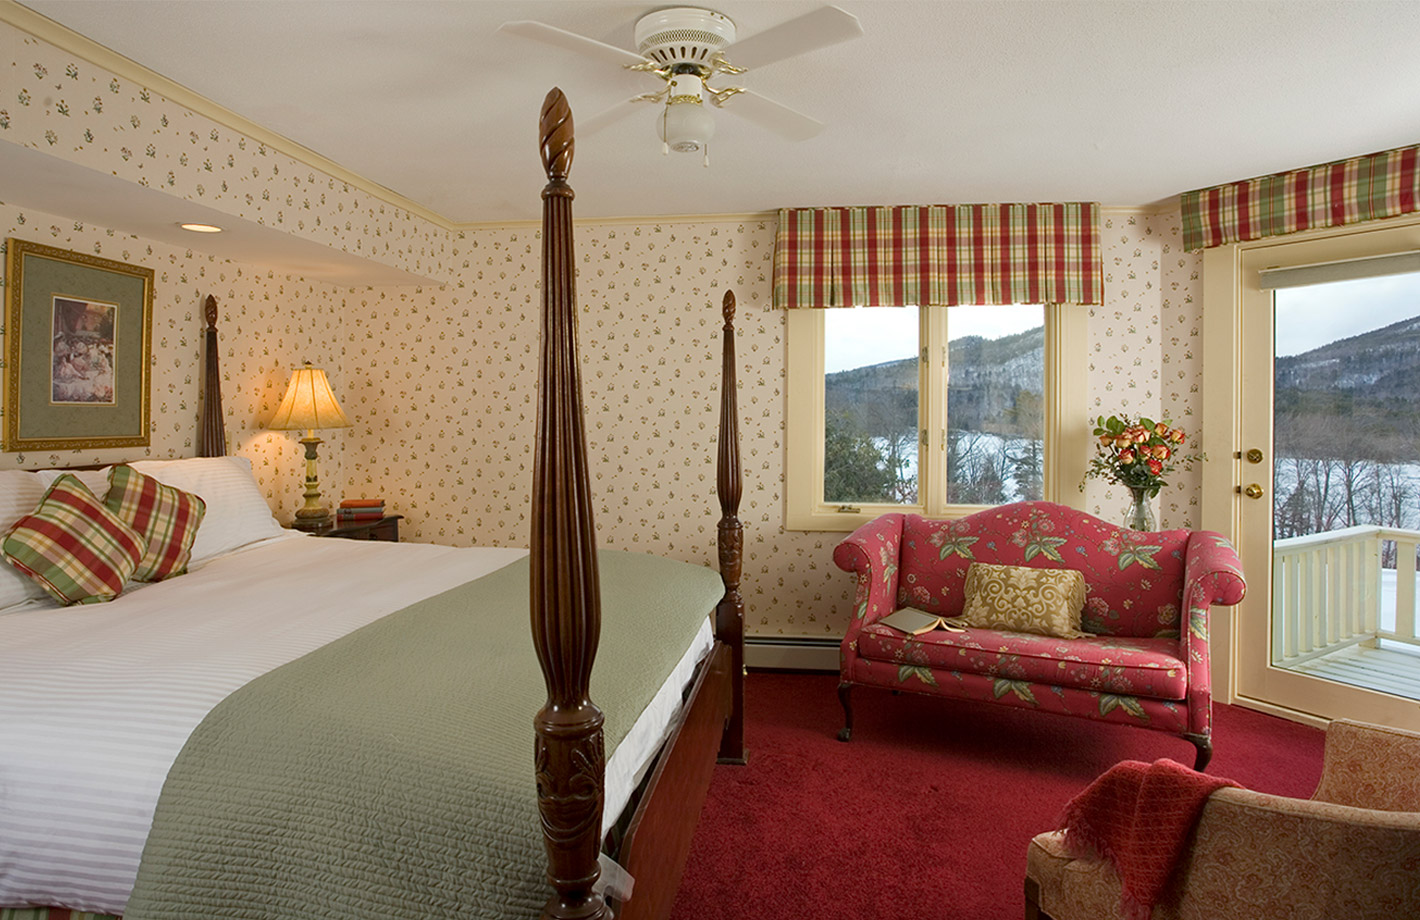 Mayfair Room